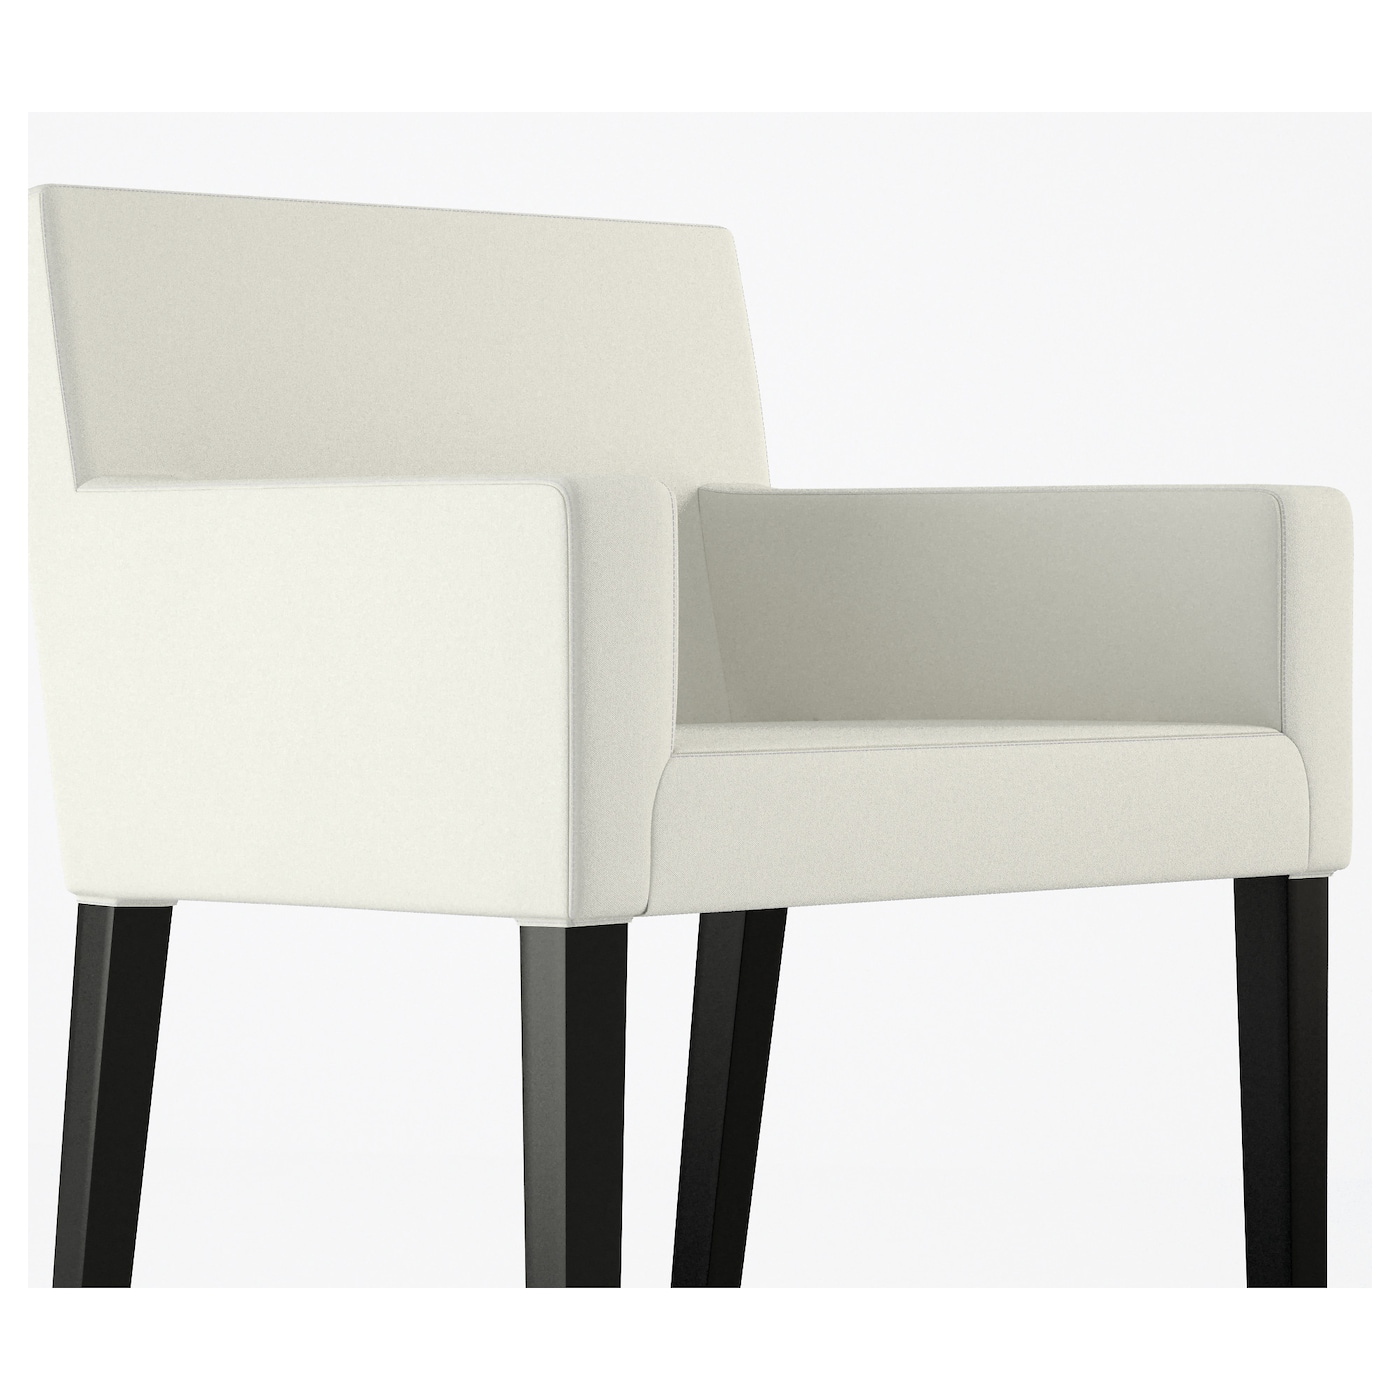 black furniture ikea. IKEA NILS Chair With Armrests The Cover Can Be Machine Washed. Black Furniture Ikea